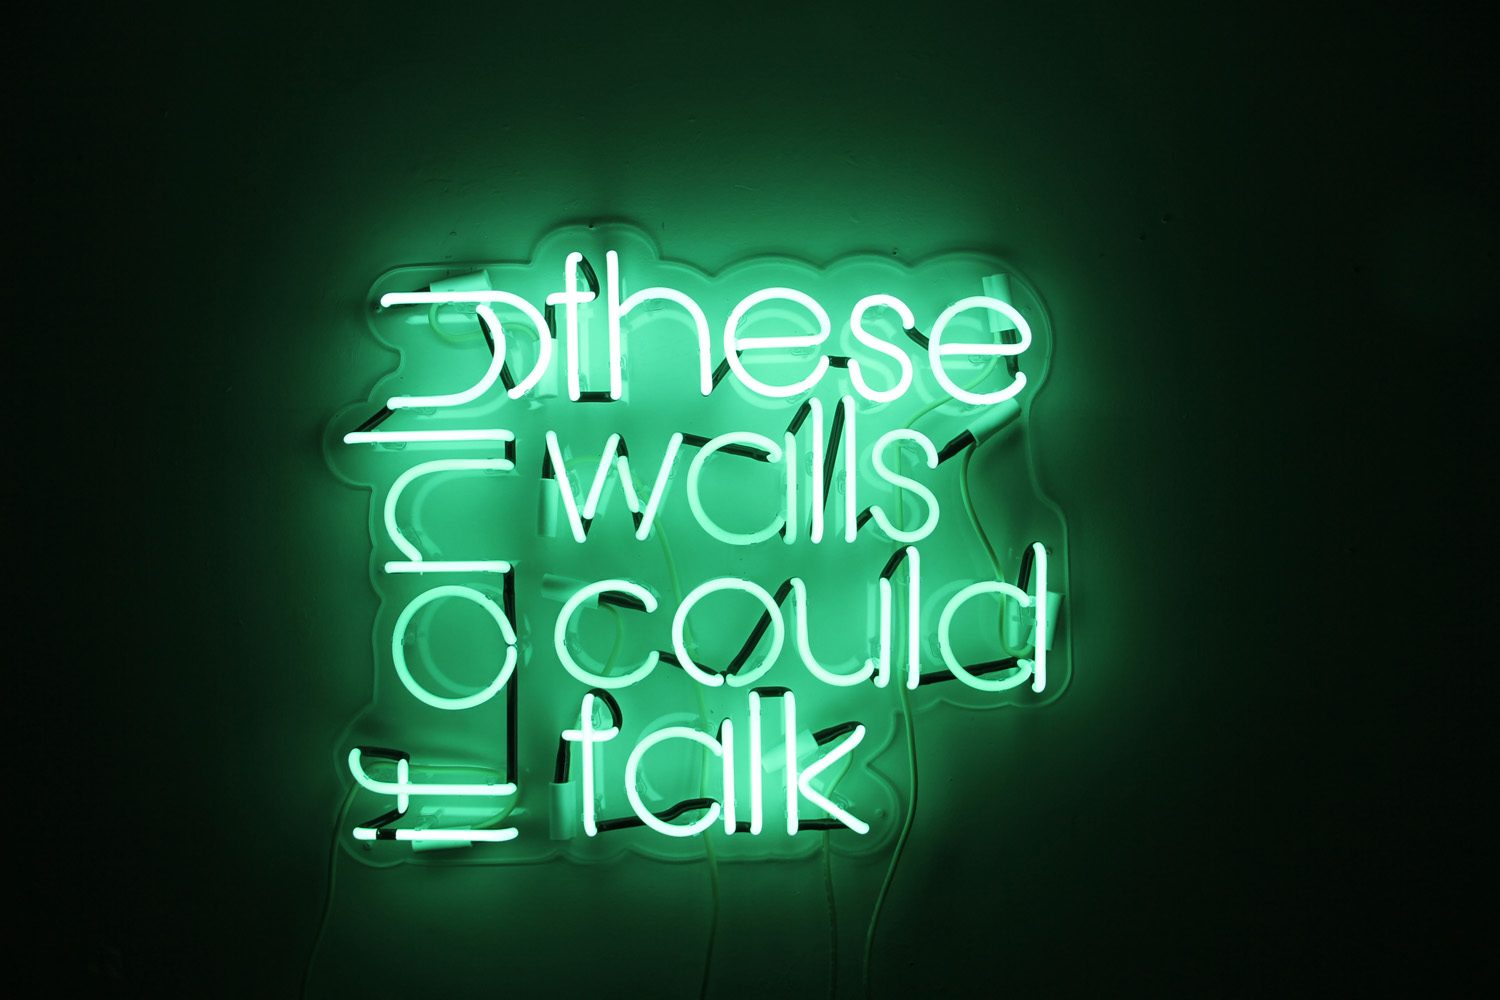 If Only These Walls Could Talk